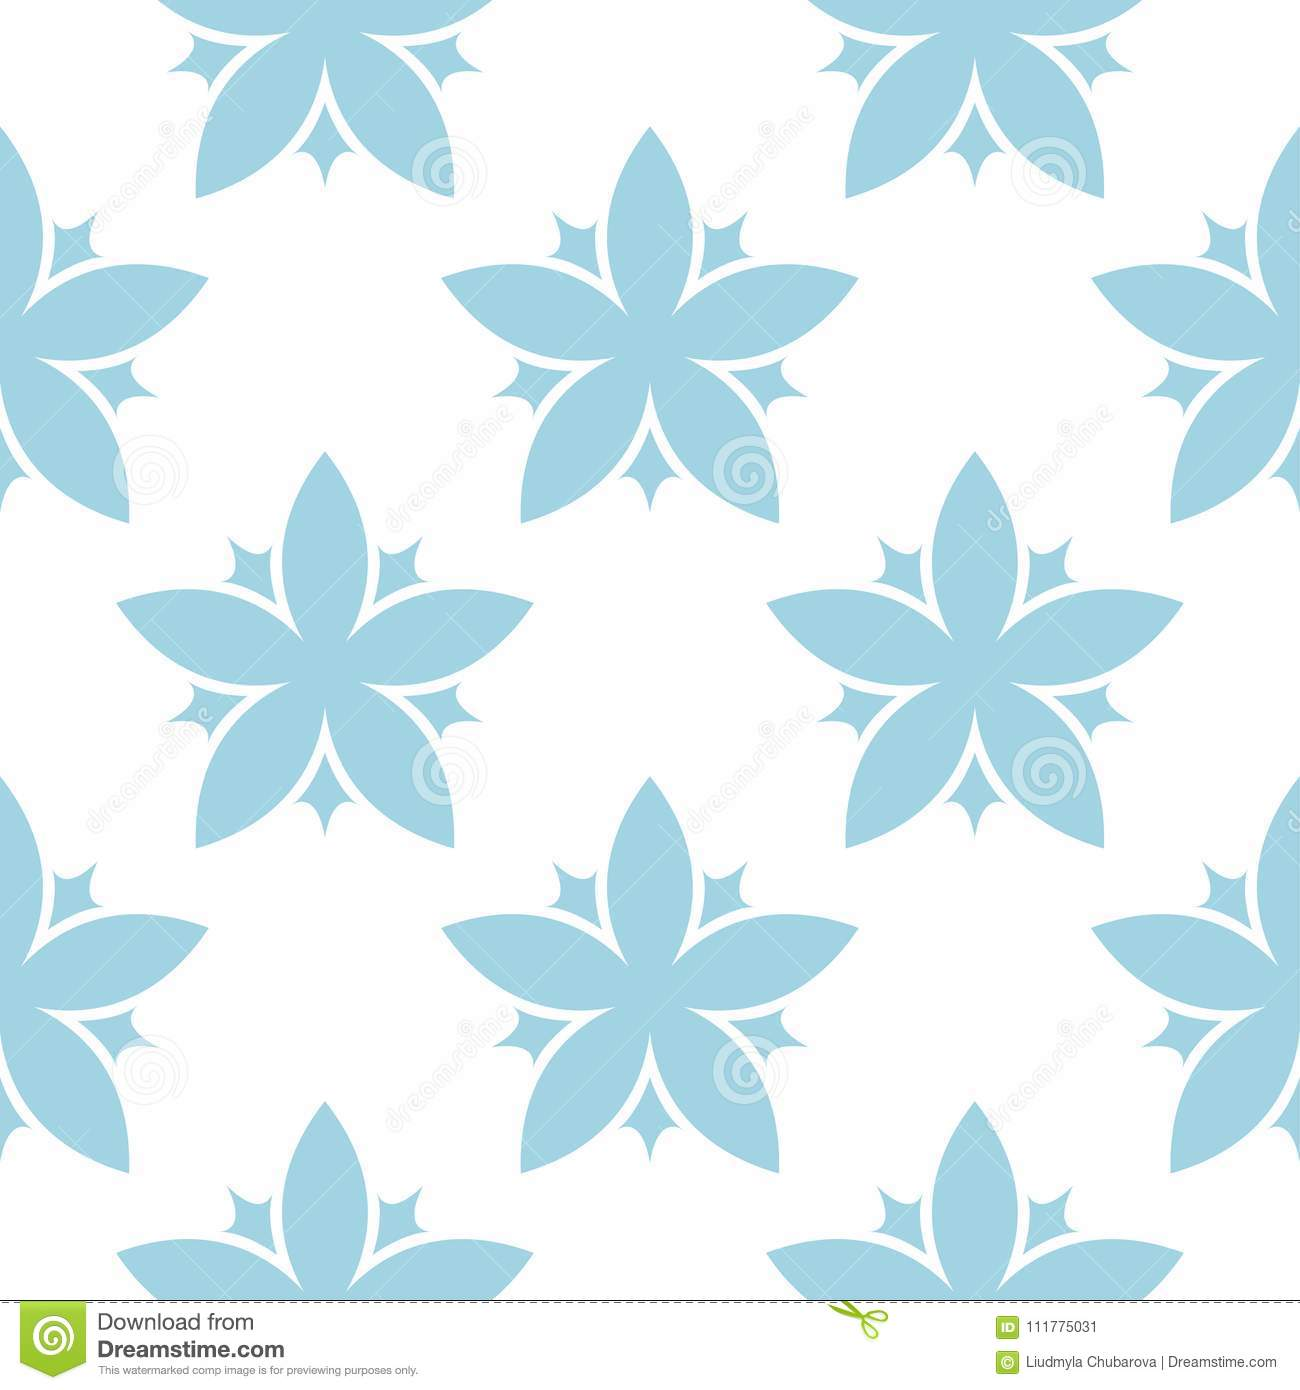 Blue floral seamless pattern on white background